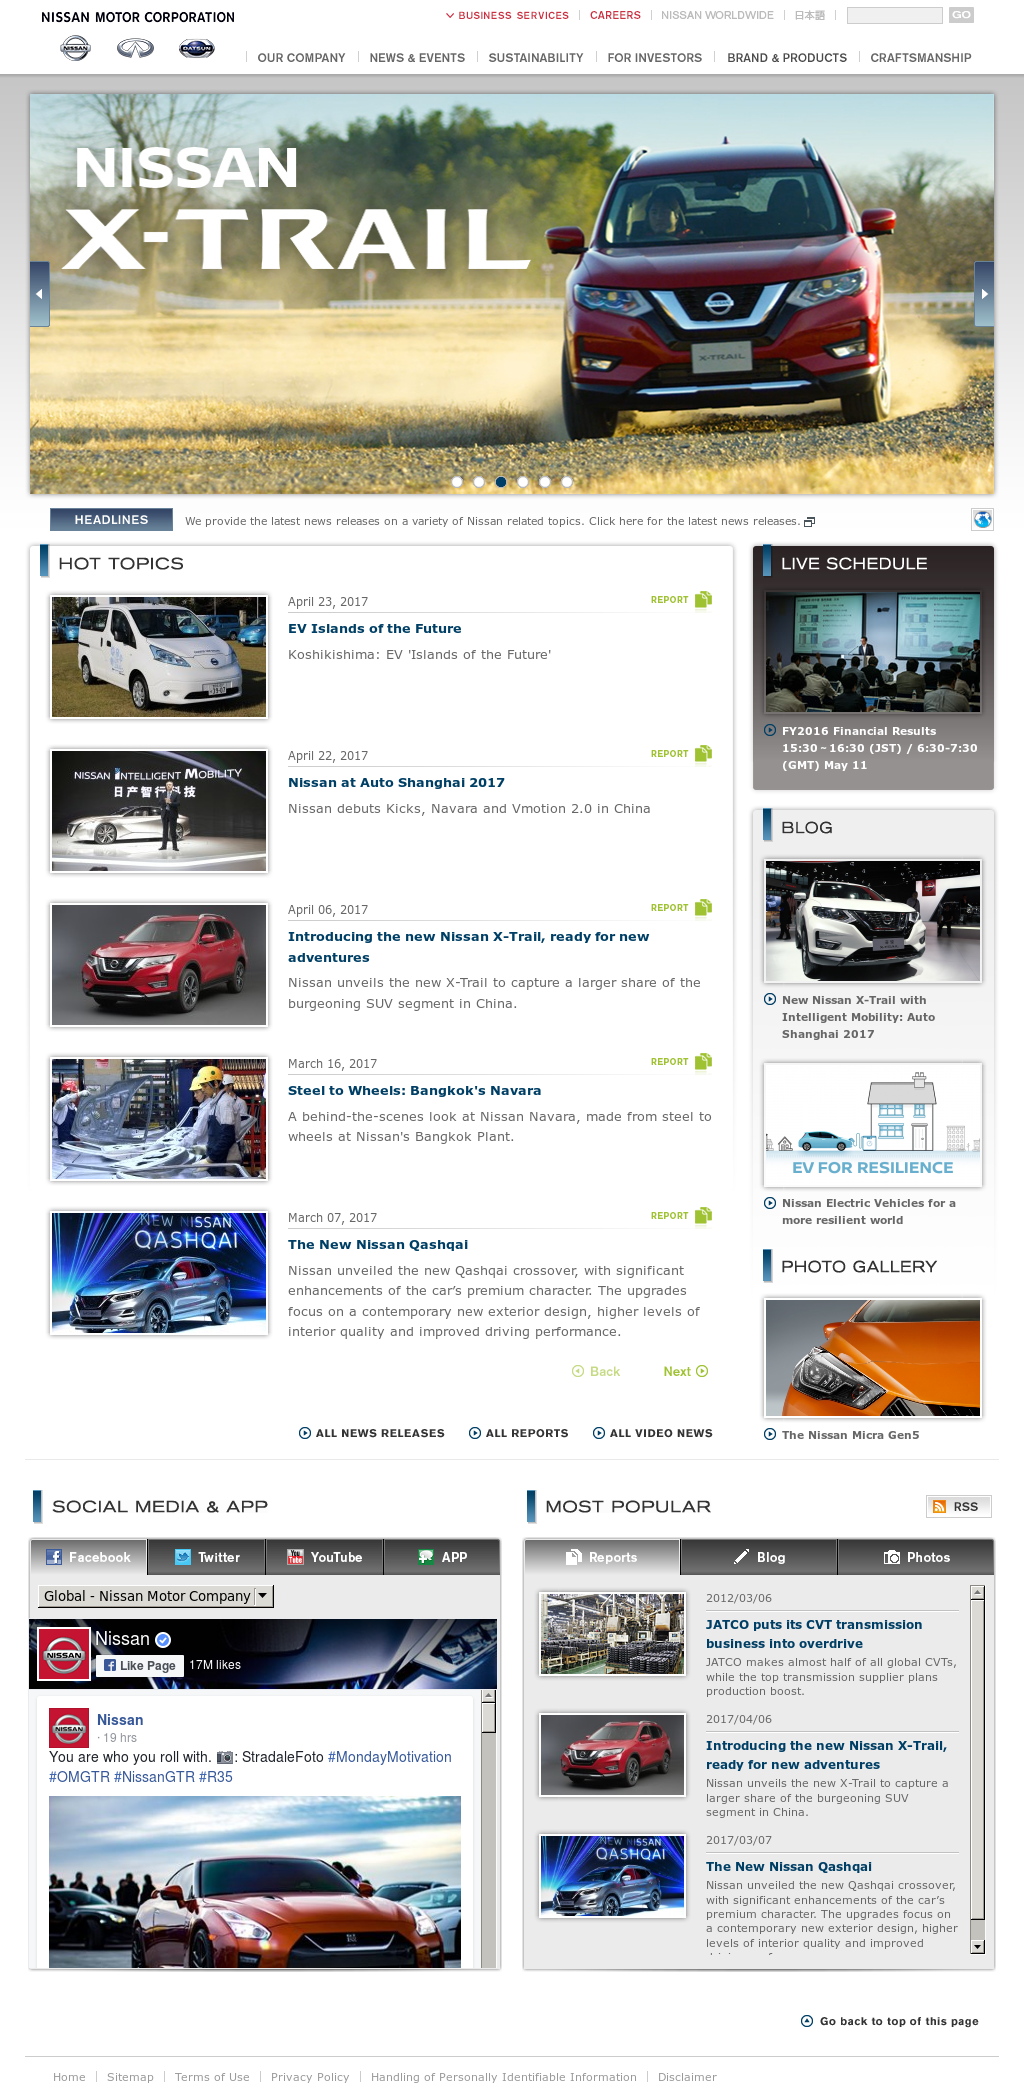 Nissan's Latest News, Blogs, Press Releases & Videos